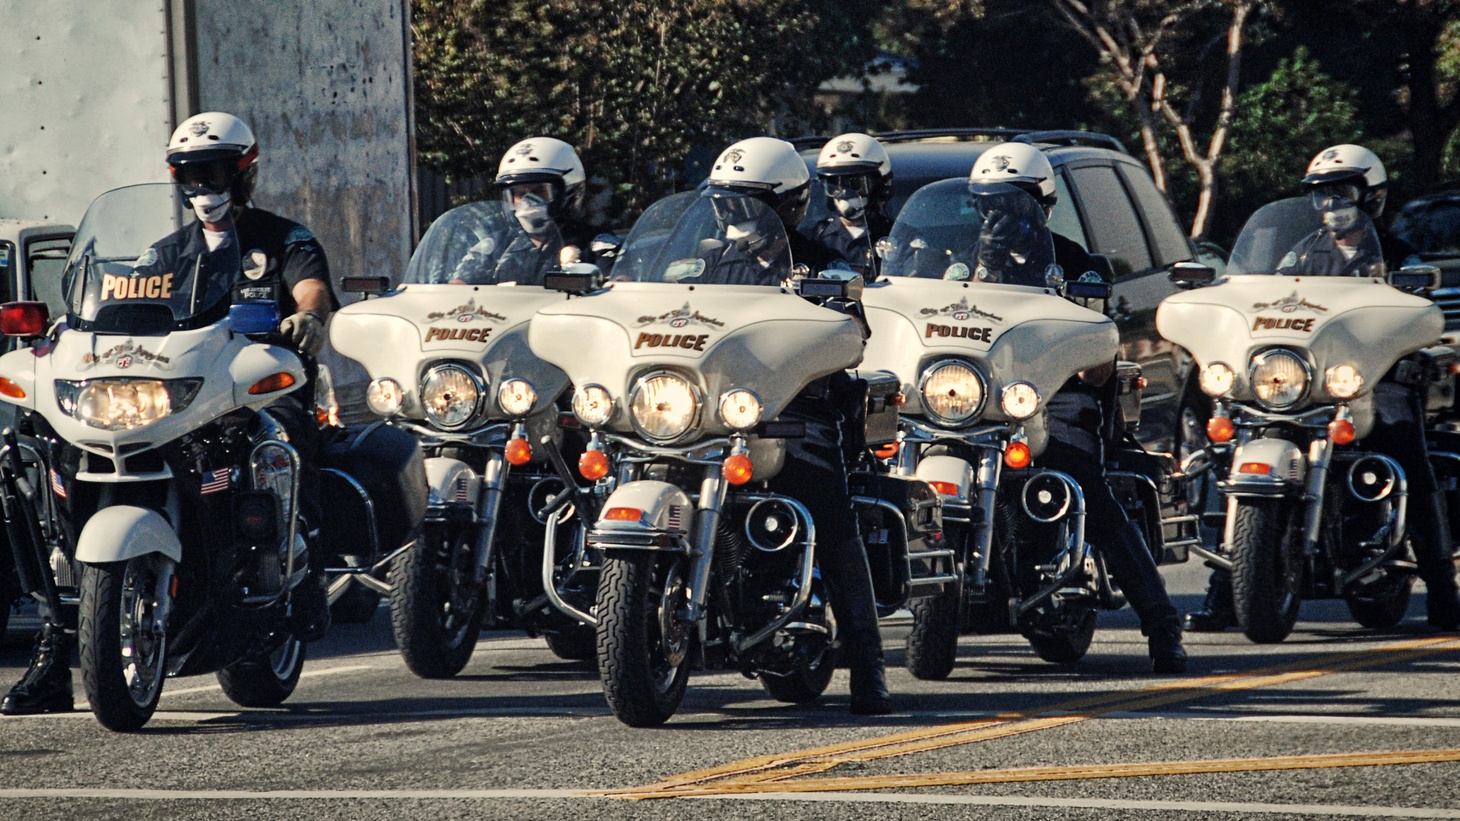 LAPD on motorcycles.